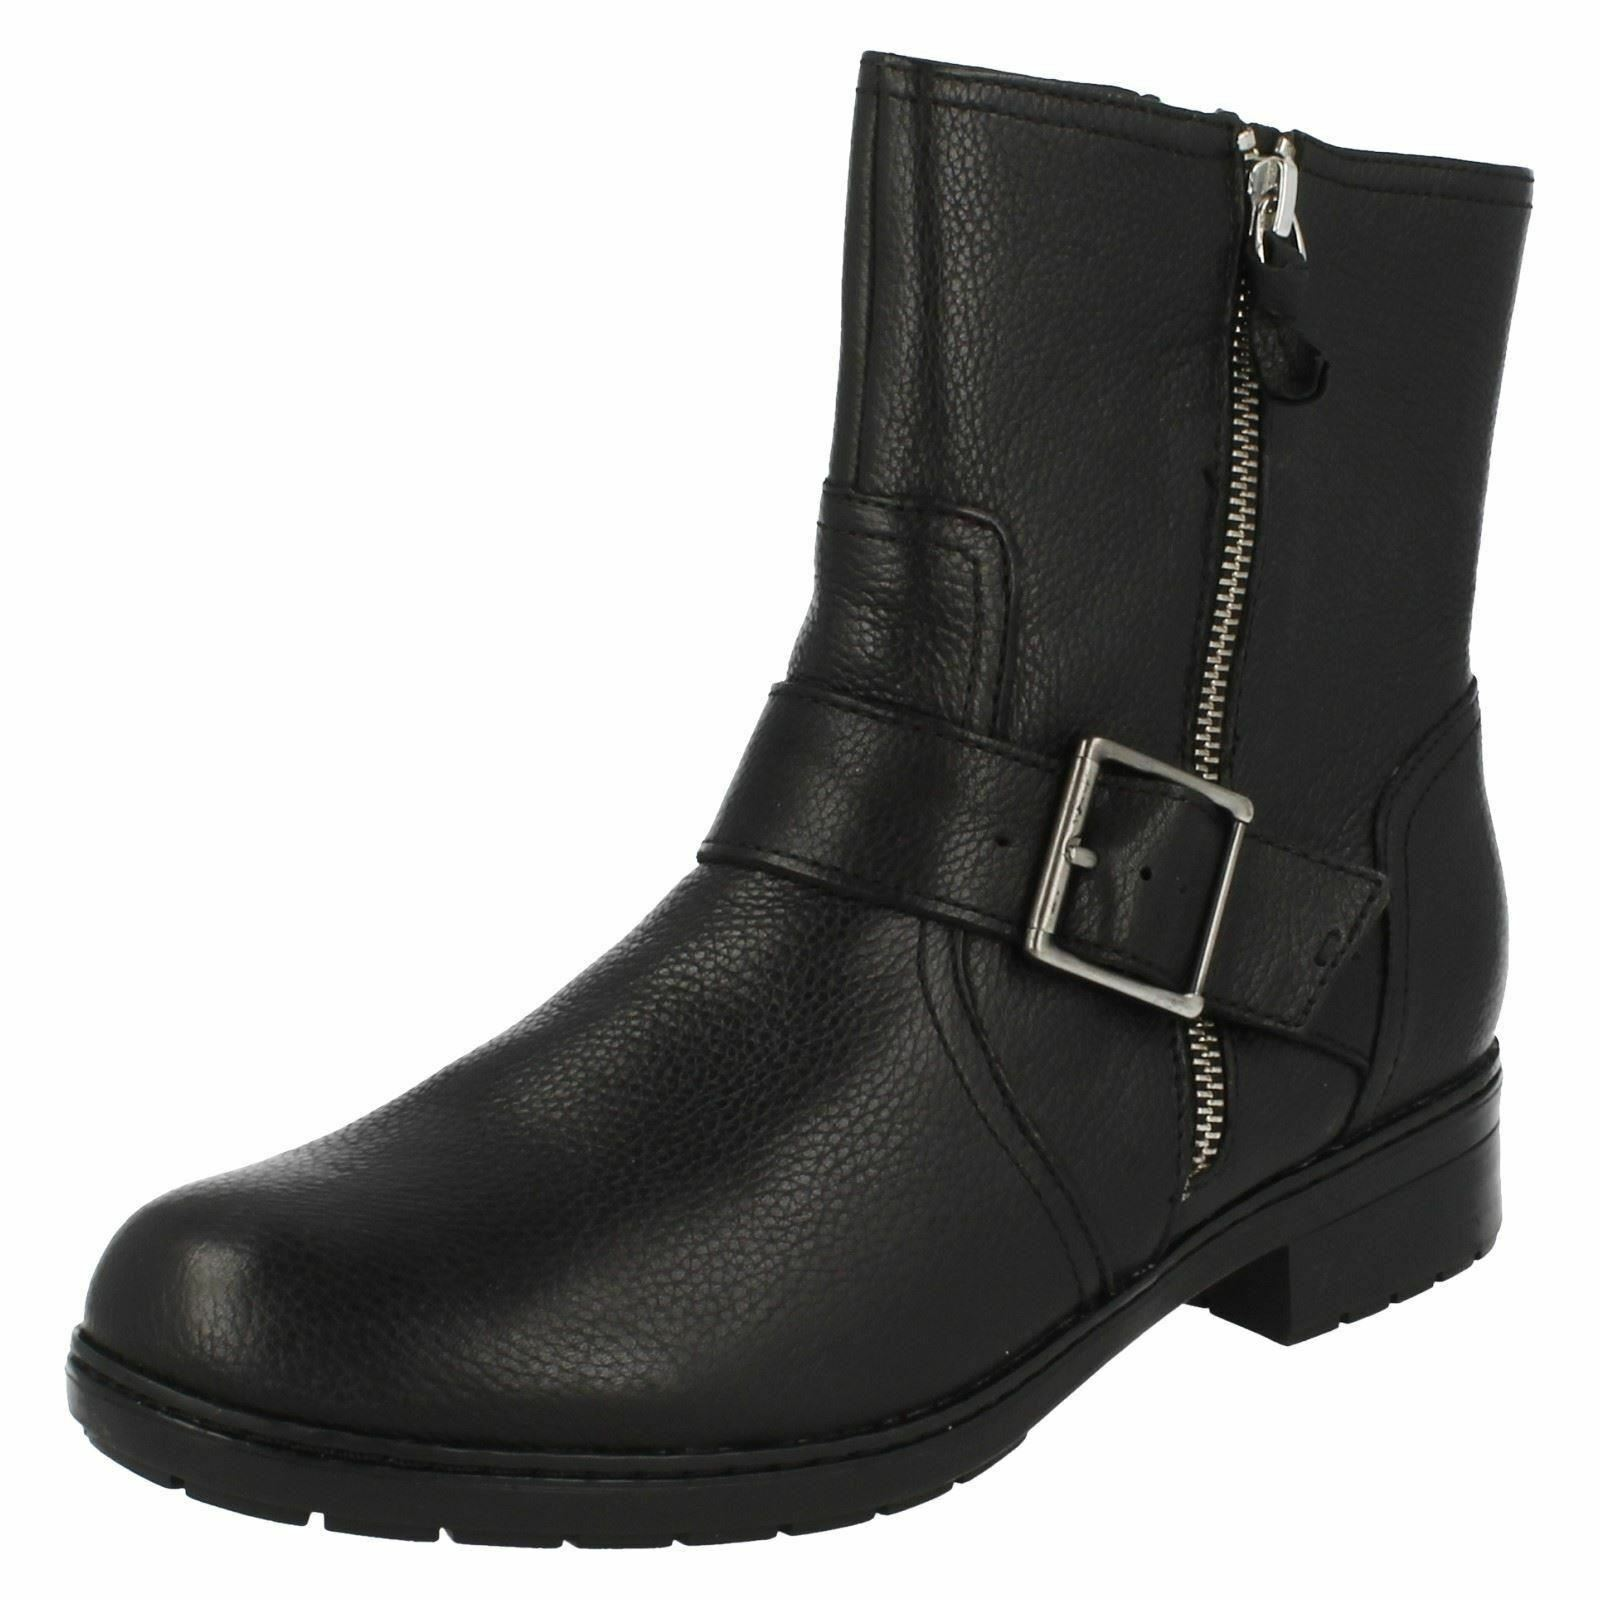 Ladies Clarks Merrian Lynn Black Leather Zip Up Casual Ankle Boots